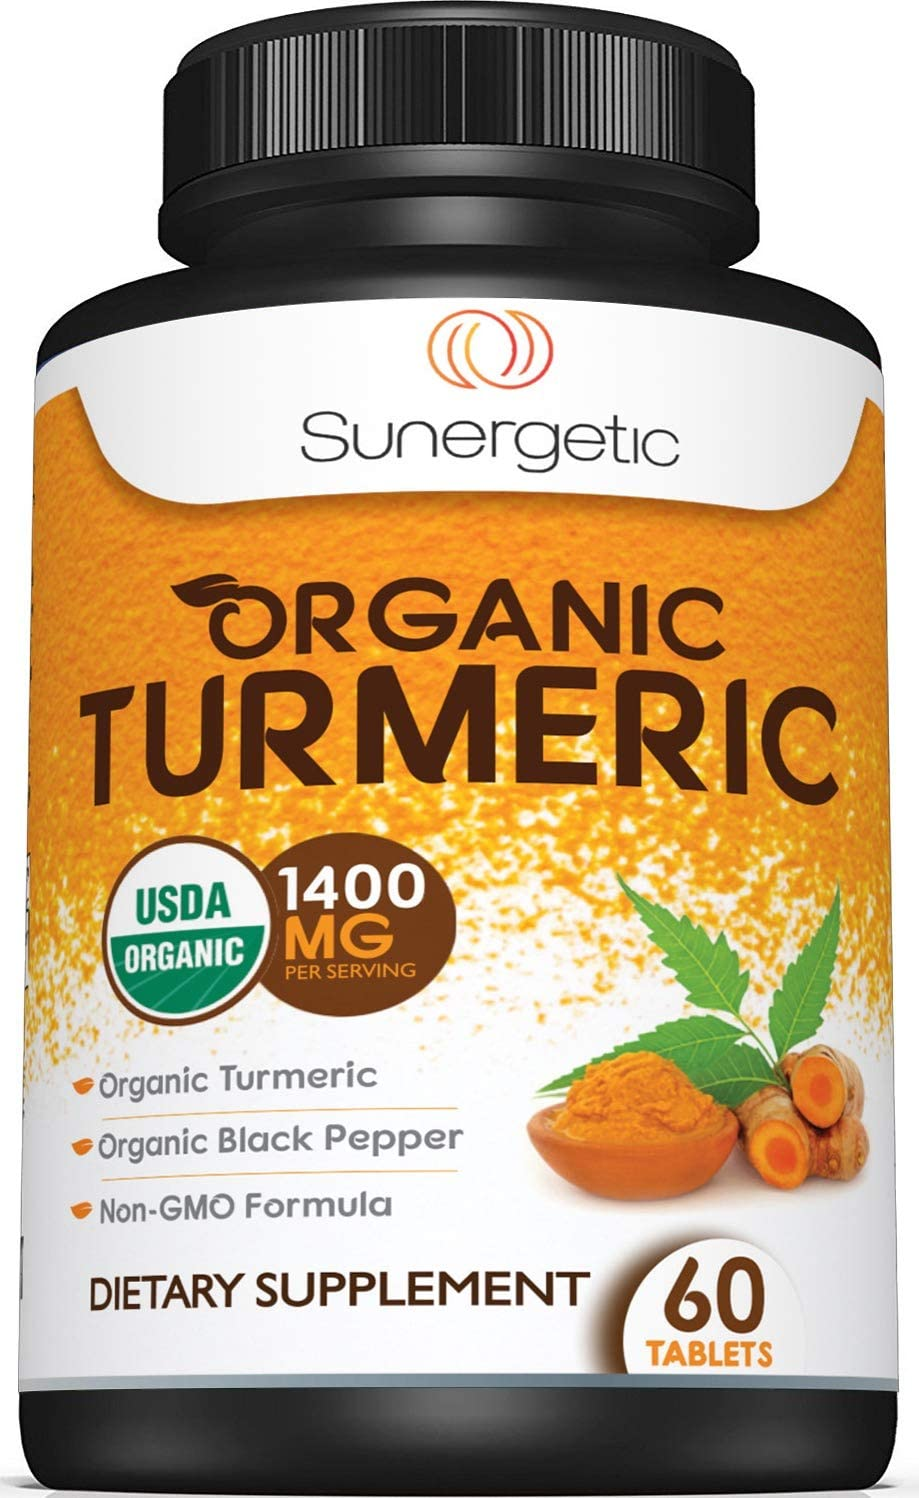 USDA Certified Organic Turmeric Supplement Includes Organic Turmeric Organic Black Pepper 1,400mg of Turmeric per Serving 60 Turmeric Tablets